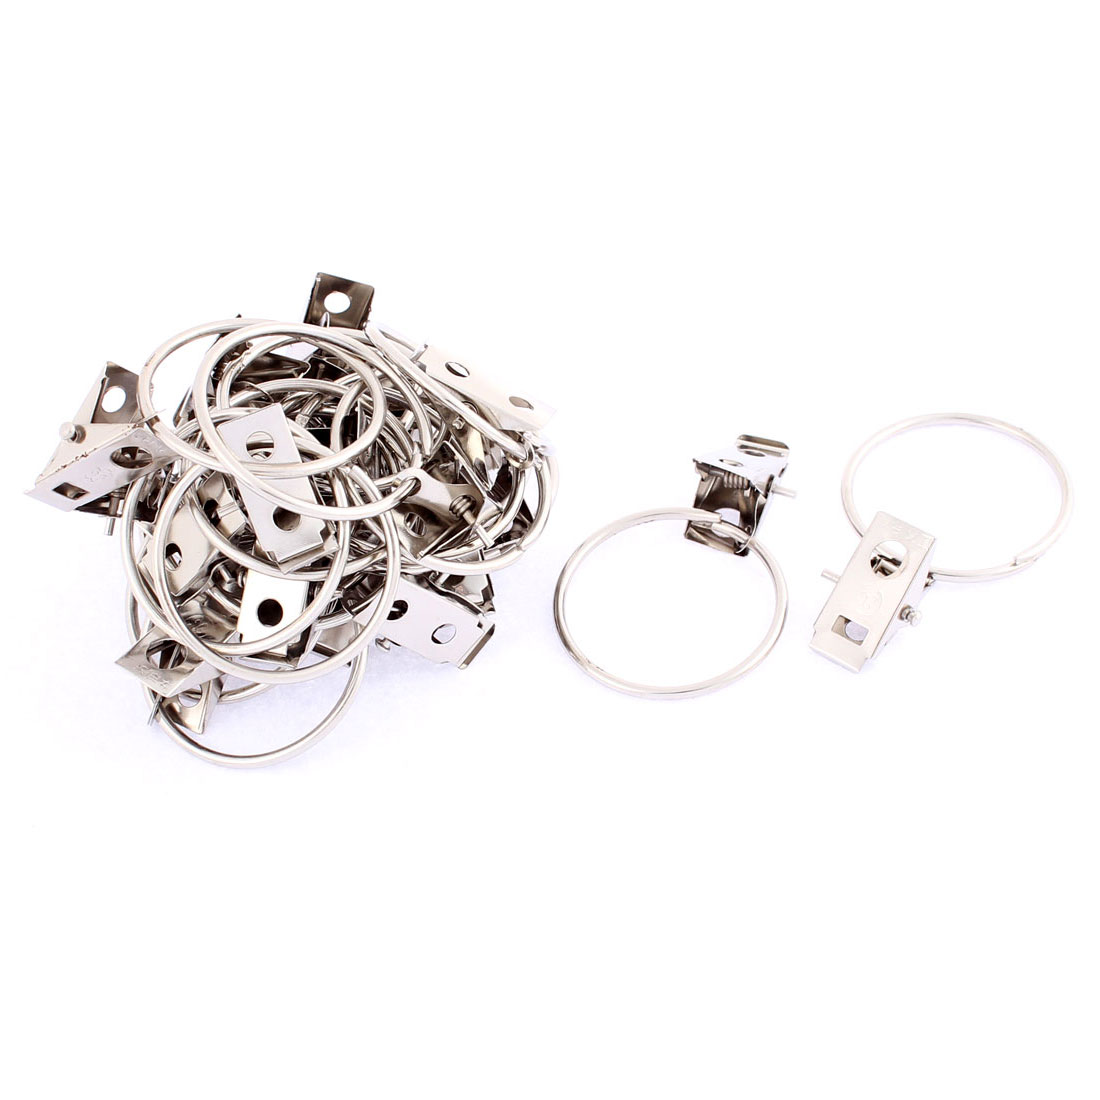 24 Pcs Stainless Steel Split Sprung Curtain Clips Clamps 36mm Dia